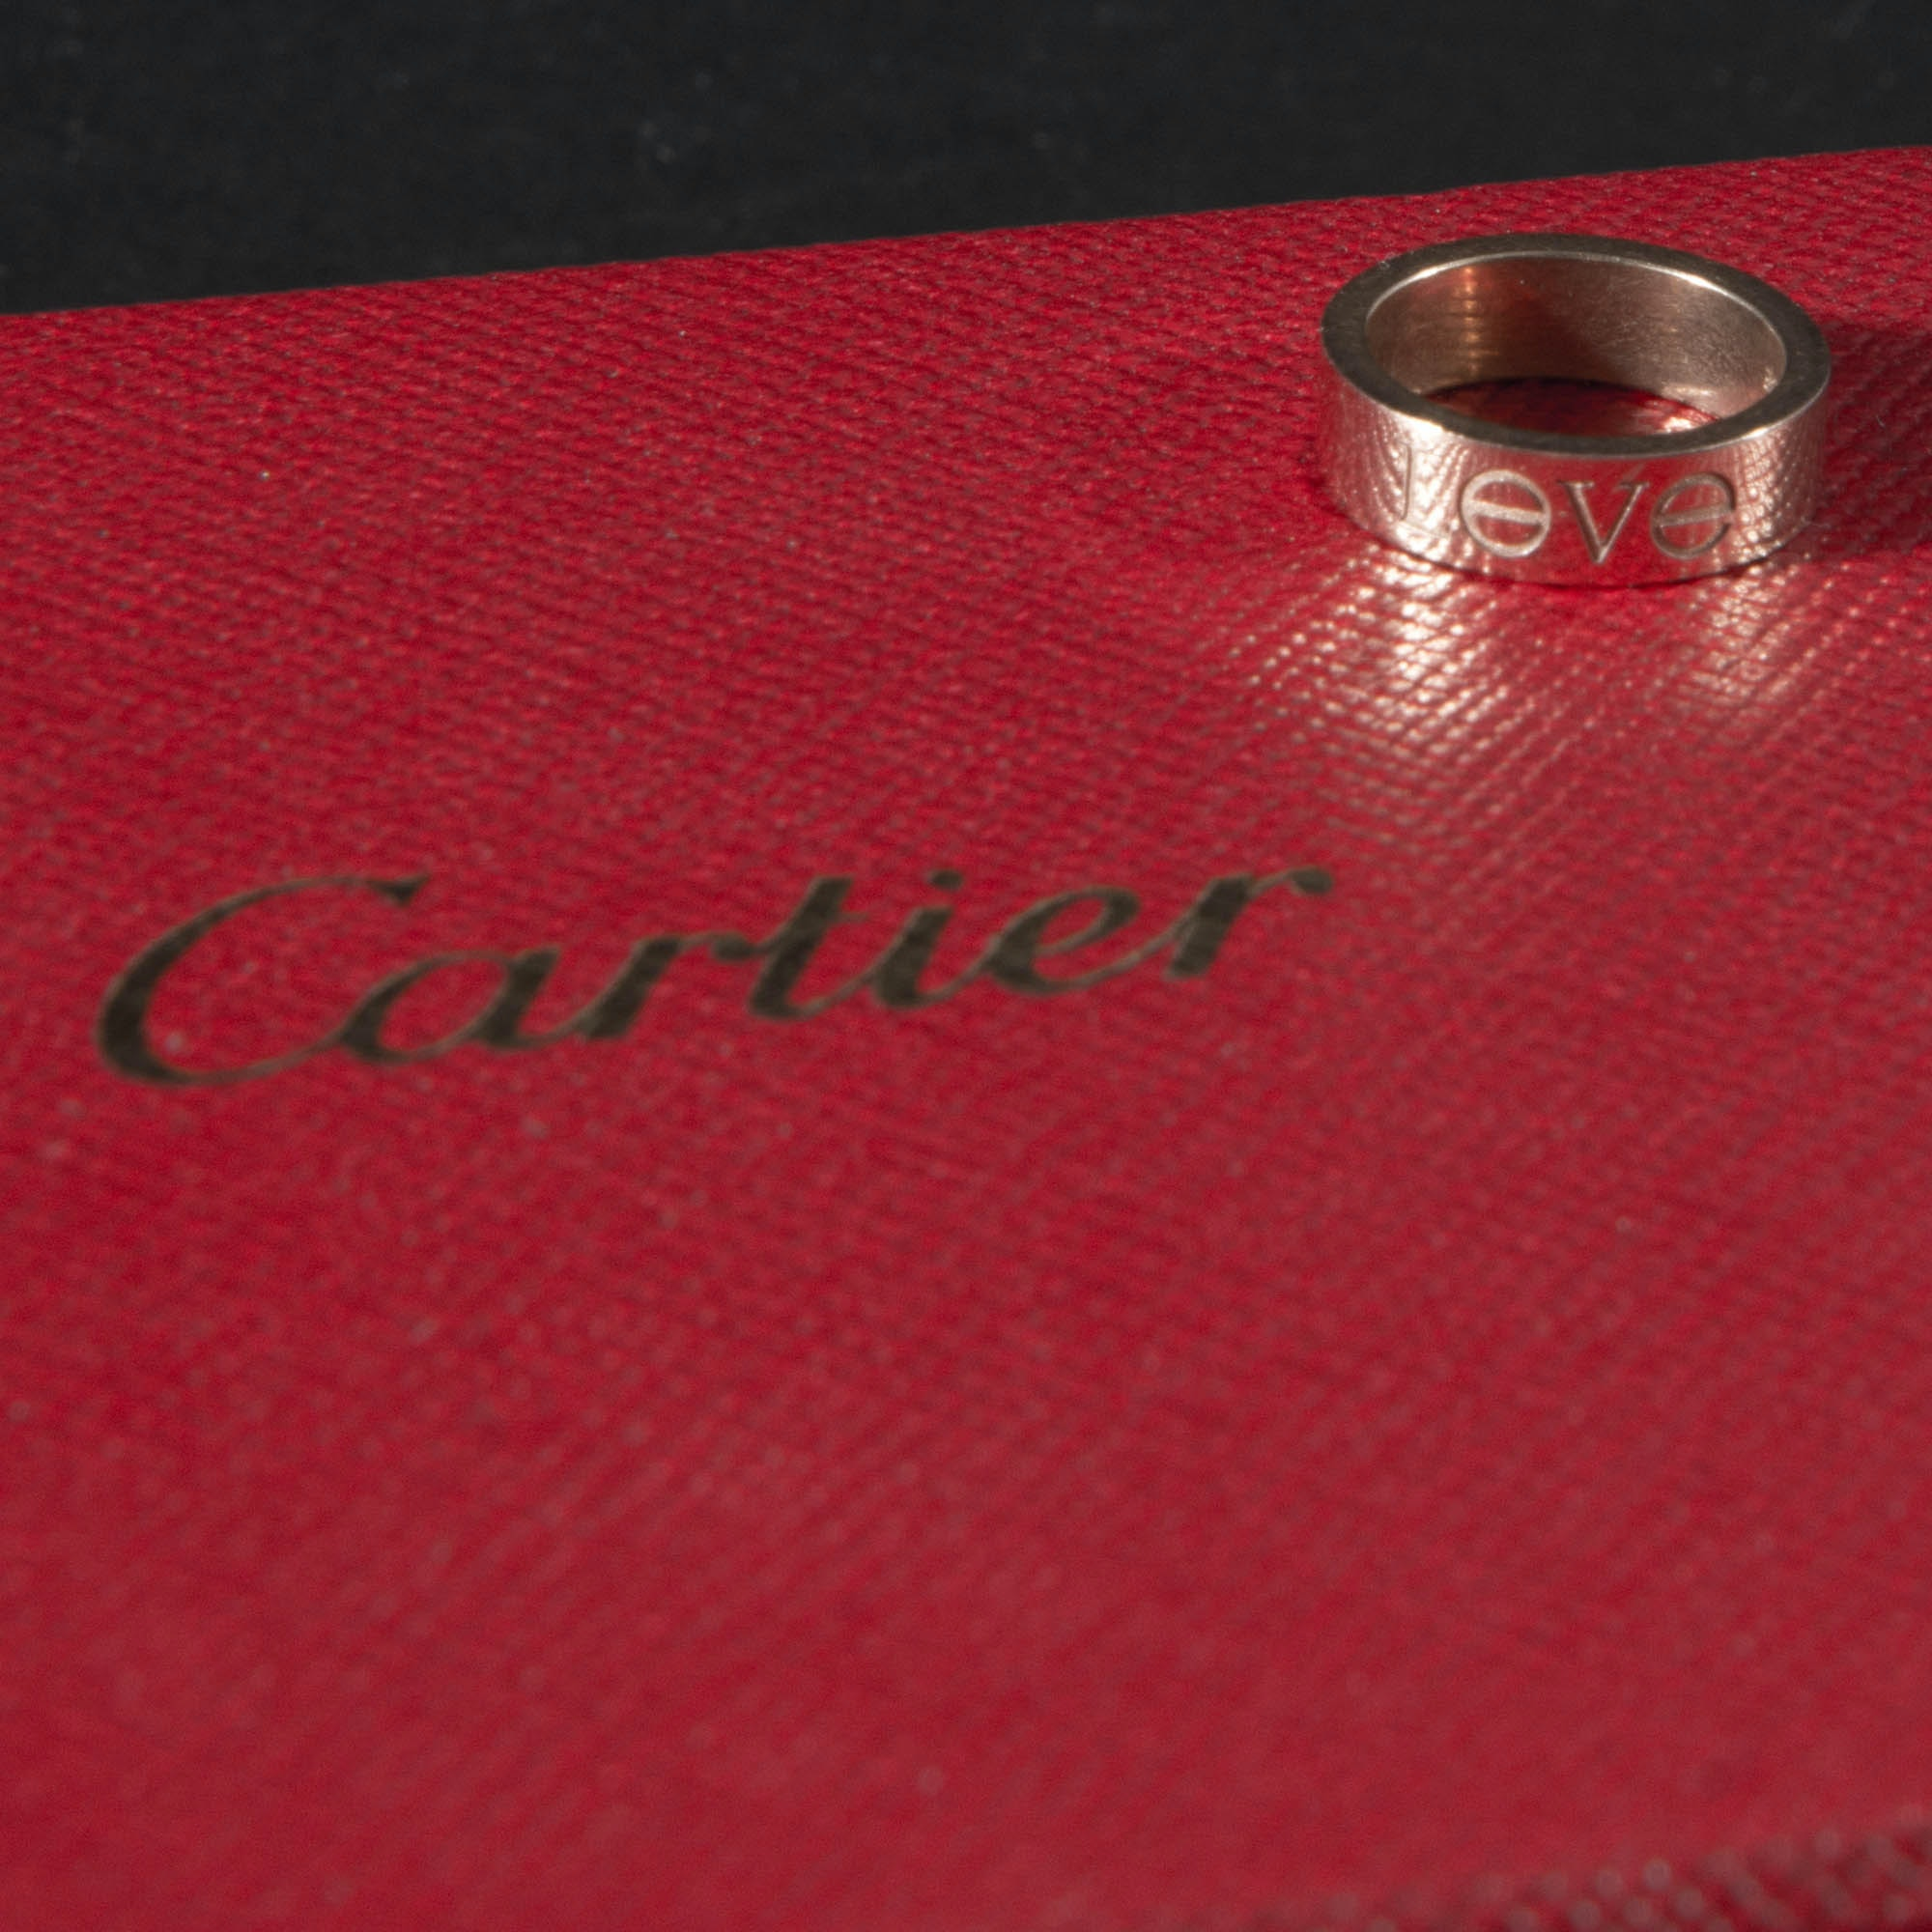 "Cartier ""Love"" Charm"